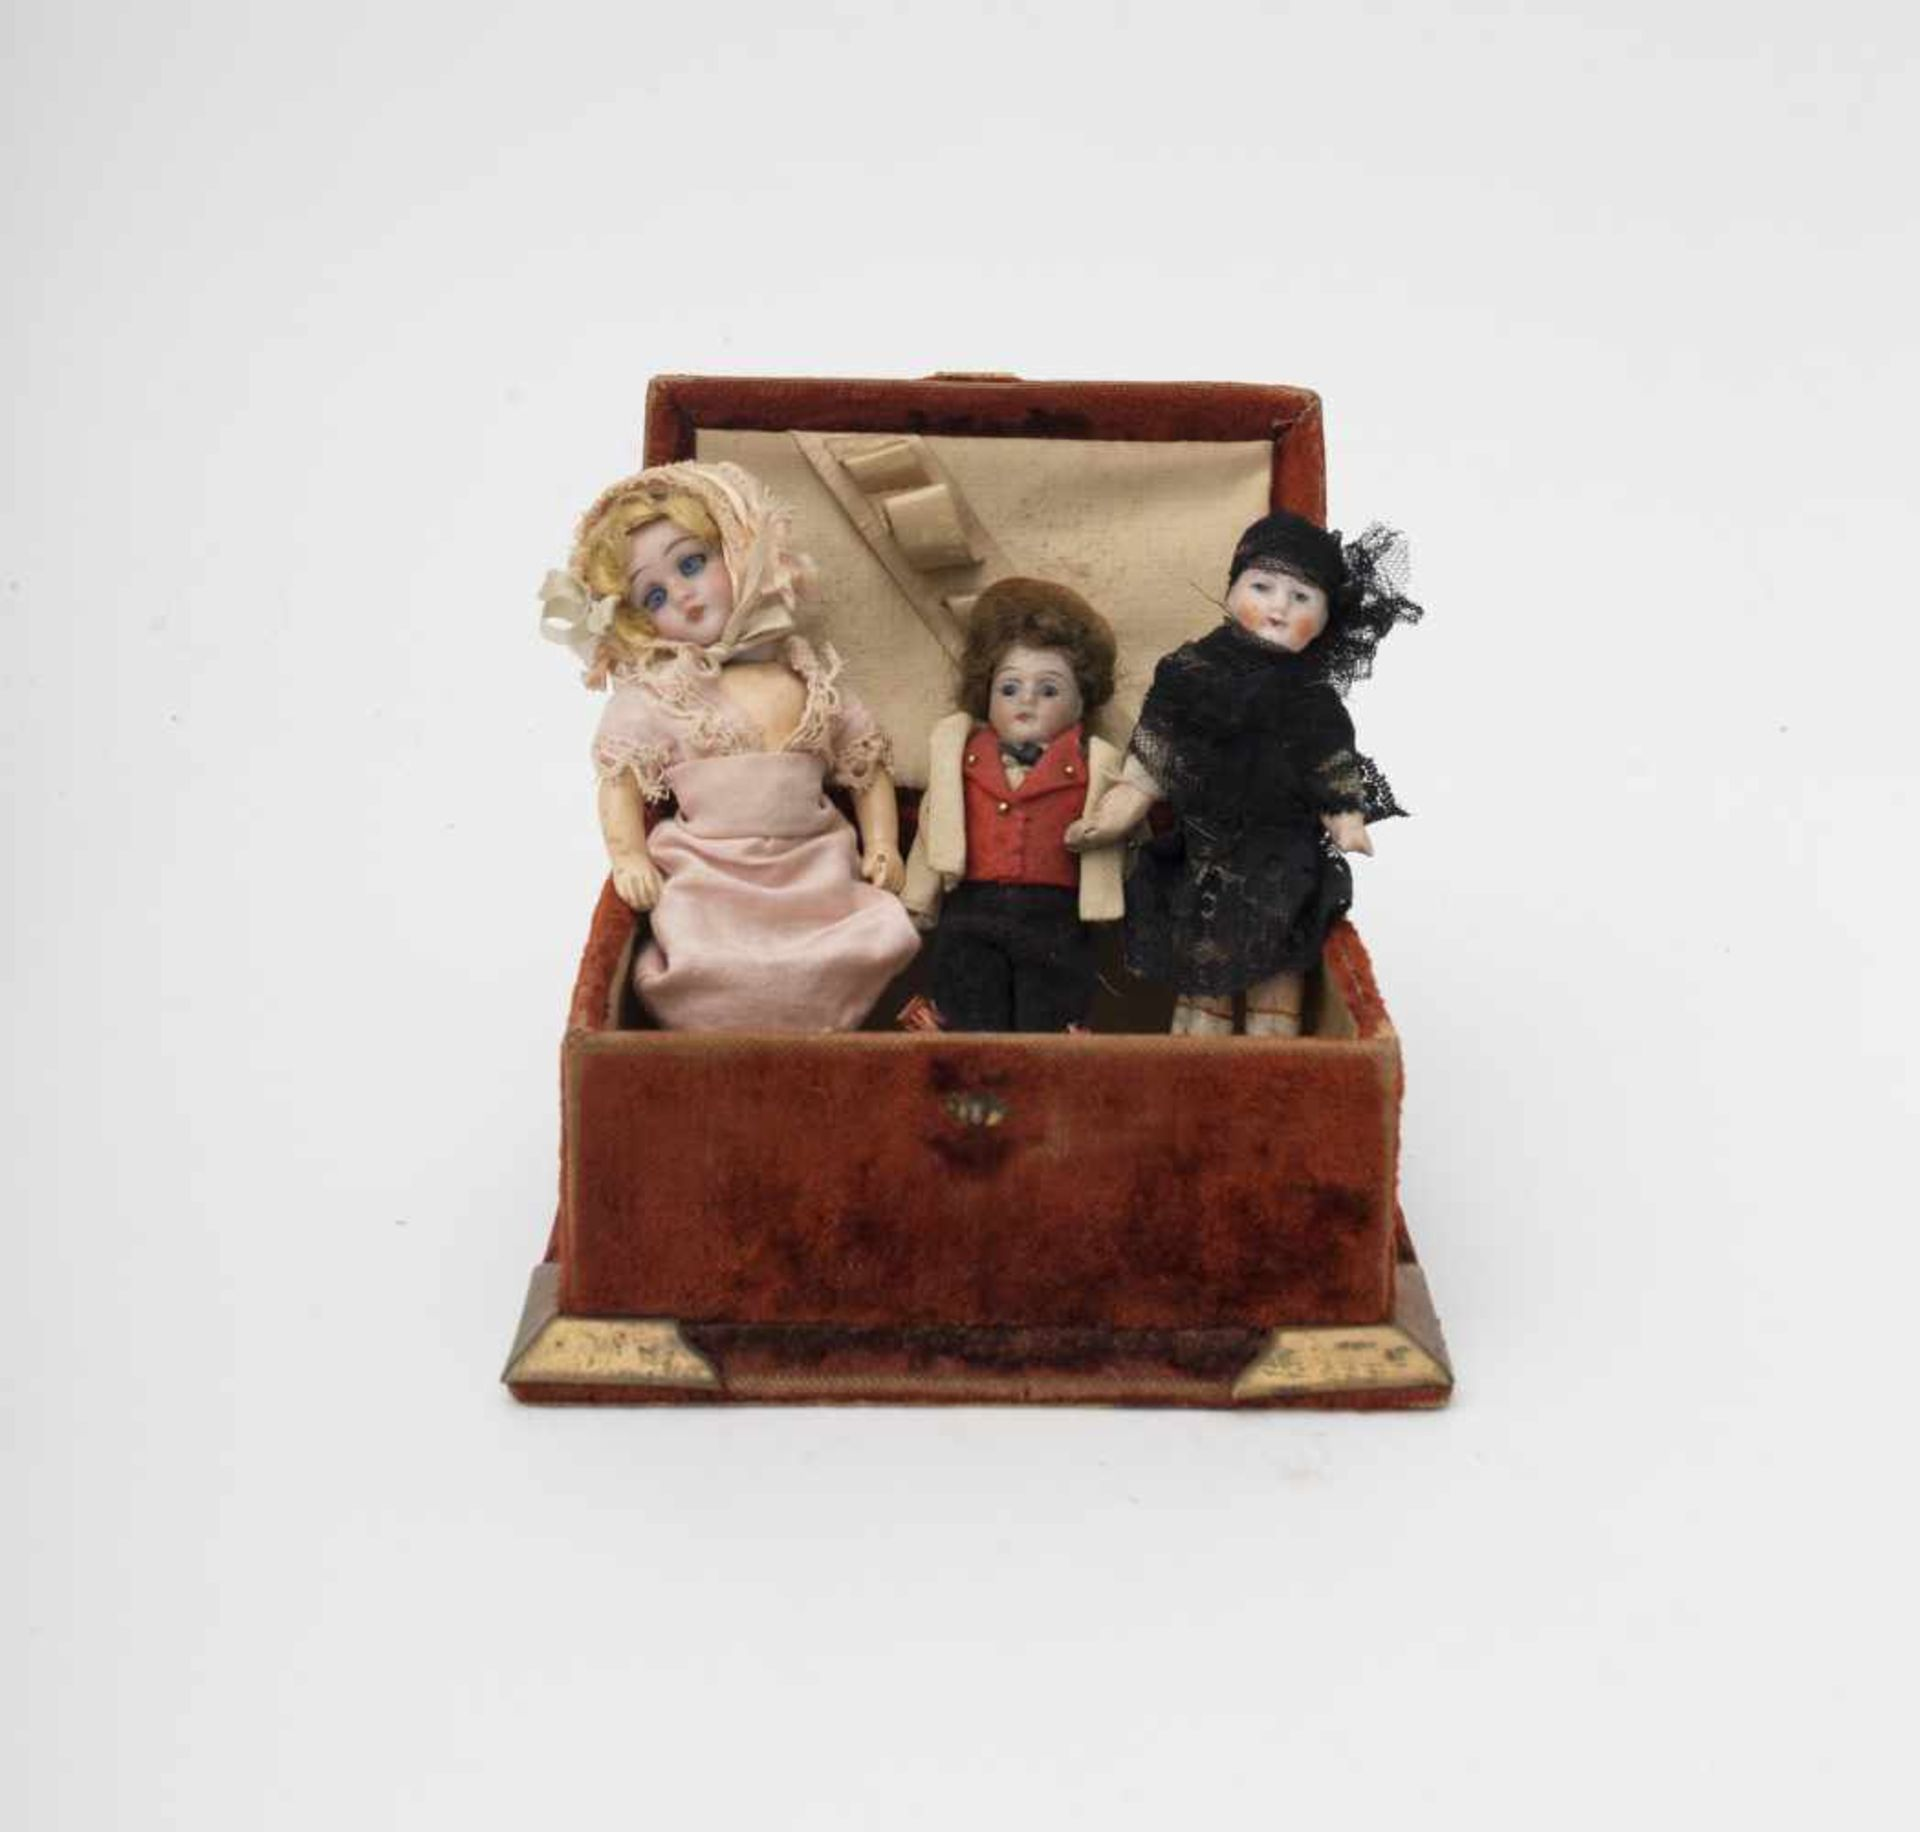 Small case Comprising 4 mignonettes, with biscuit and composition head and body, folkloric outfit.